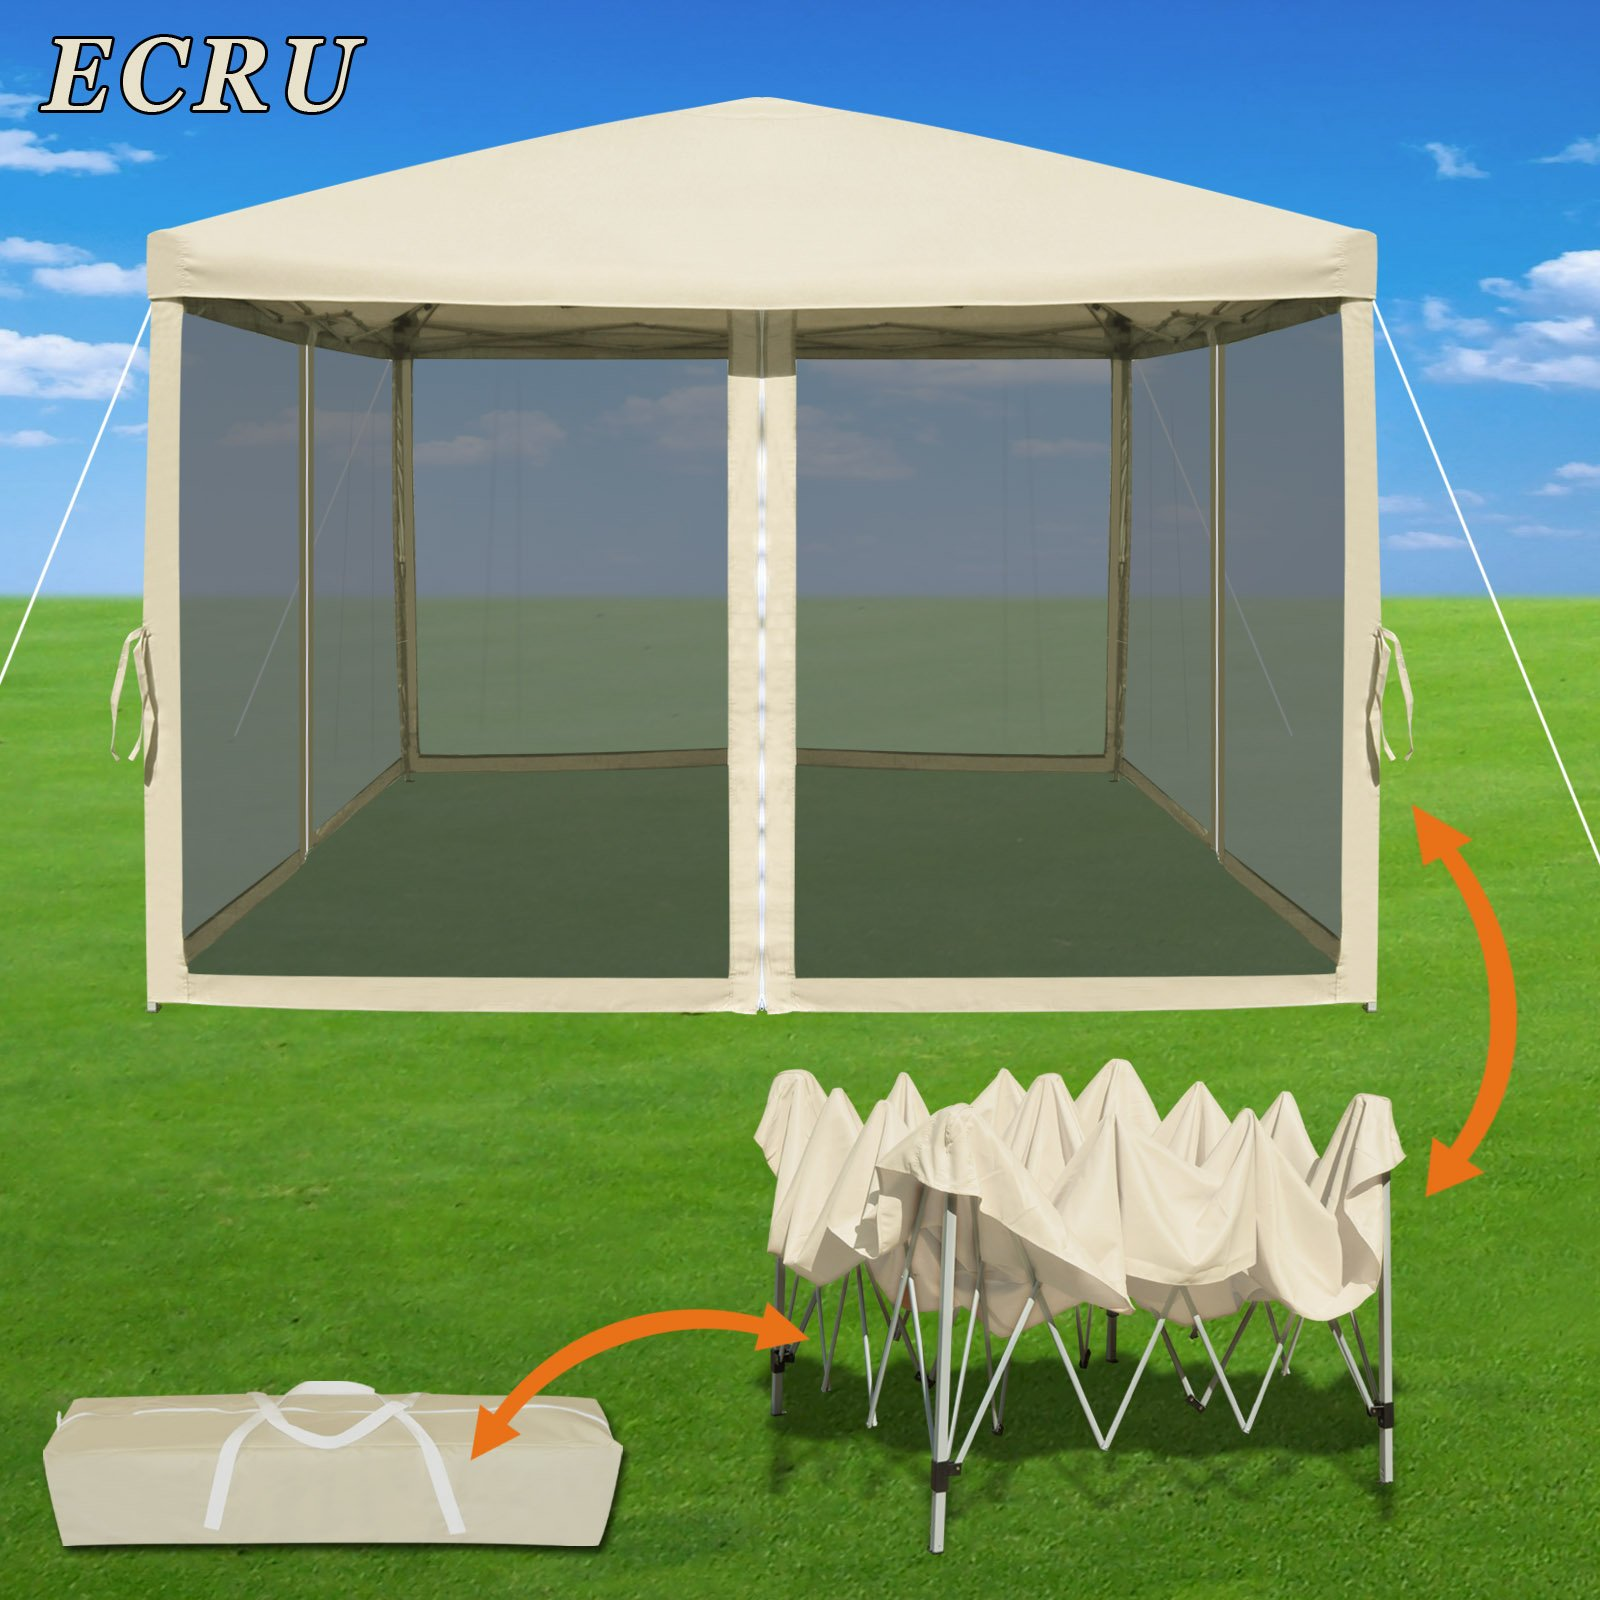 Strong Camel Easy Pop Up Canopy Tent 10-Feet x 10-Feet Gazebo with Mesh Side Walls Screen House (Ecru) by Strong Camel